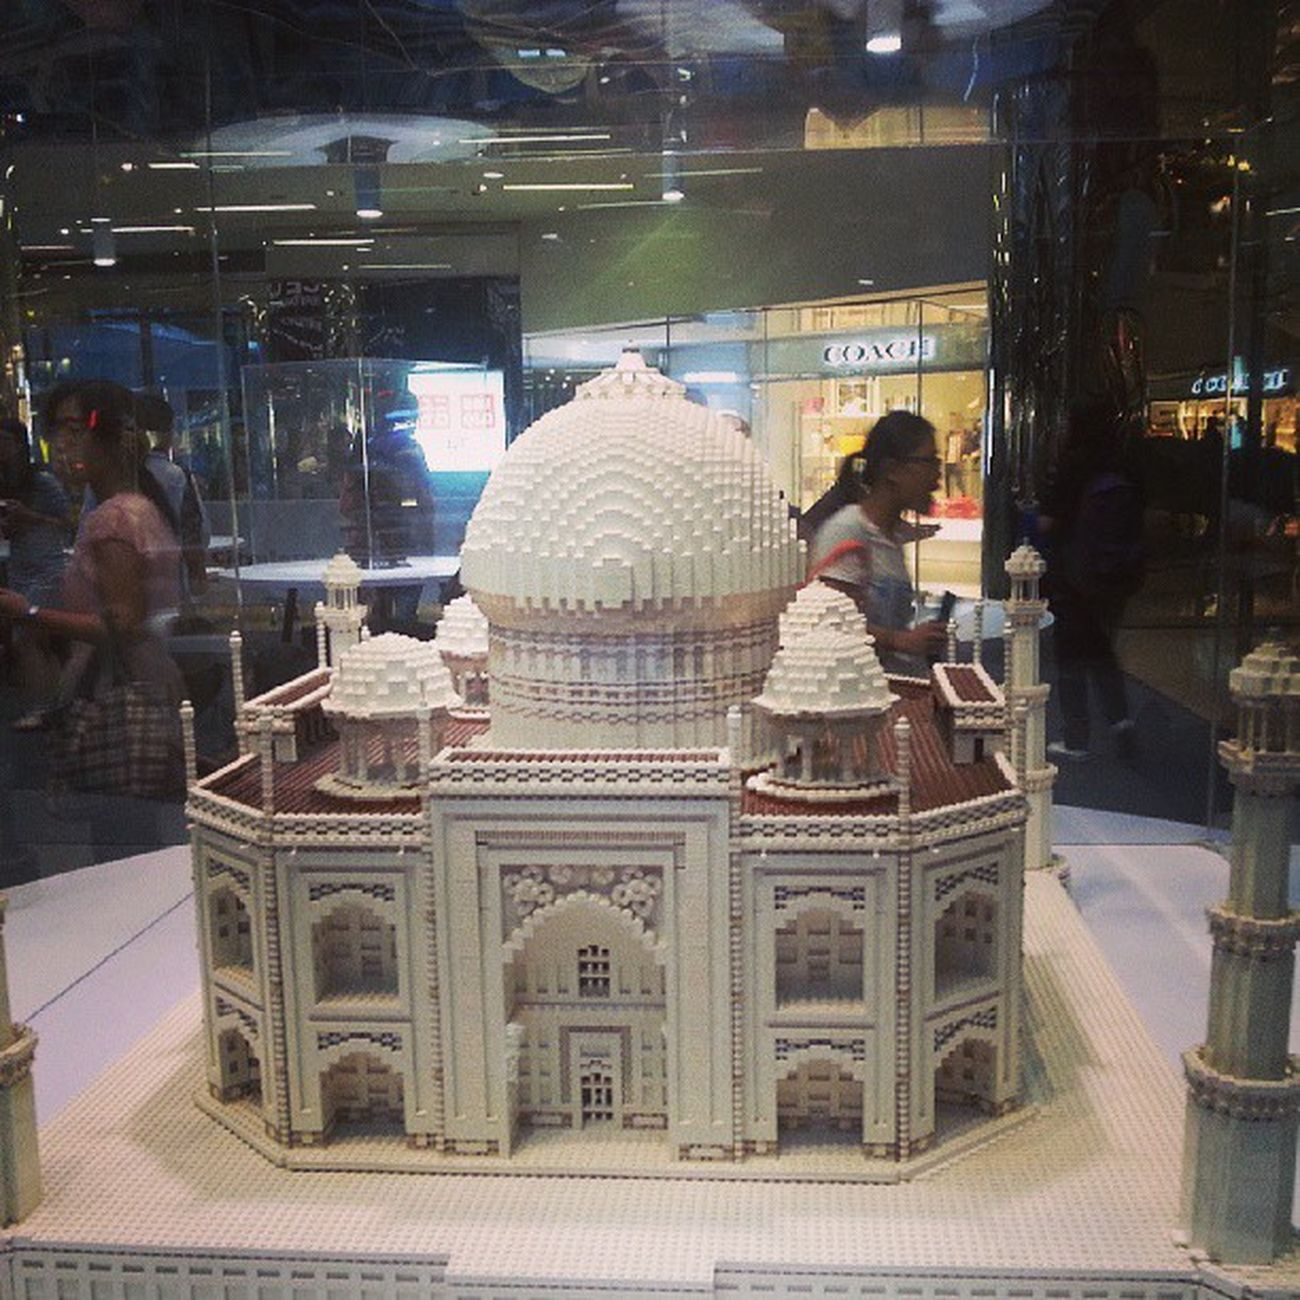 A LEGO World Amazing HongKong Travel Tajmahal